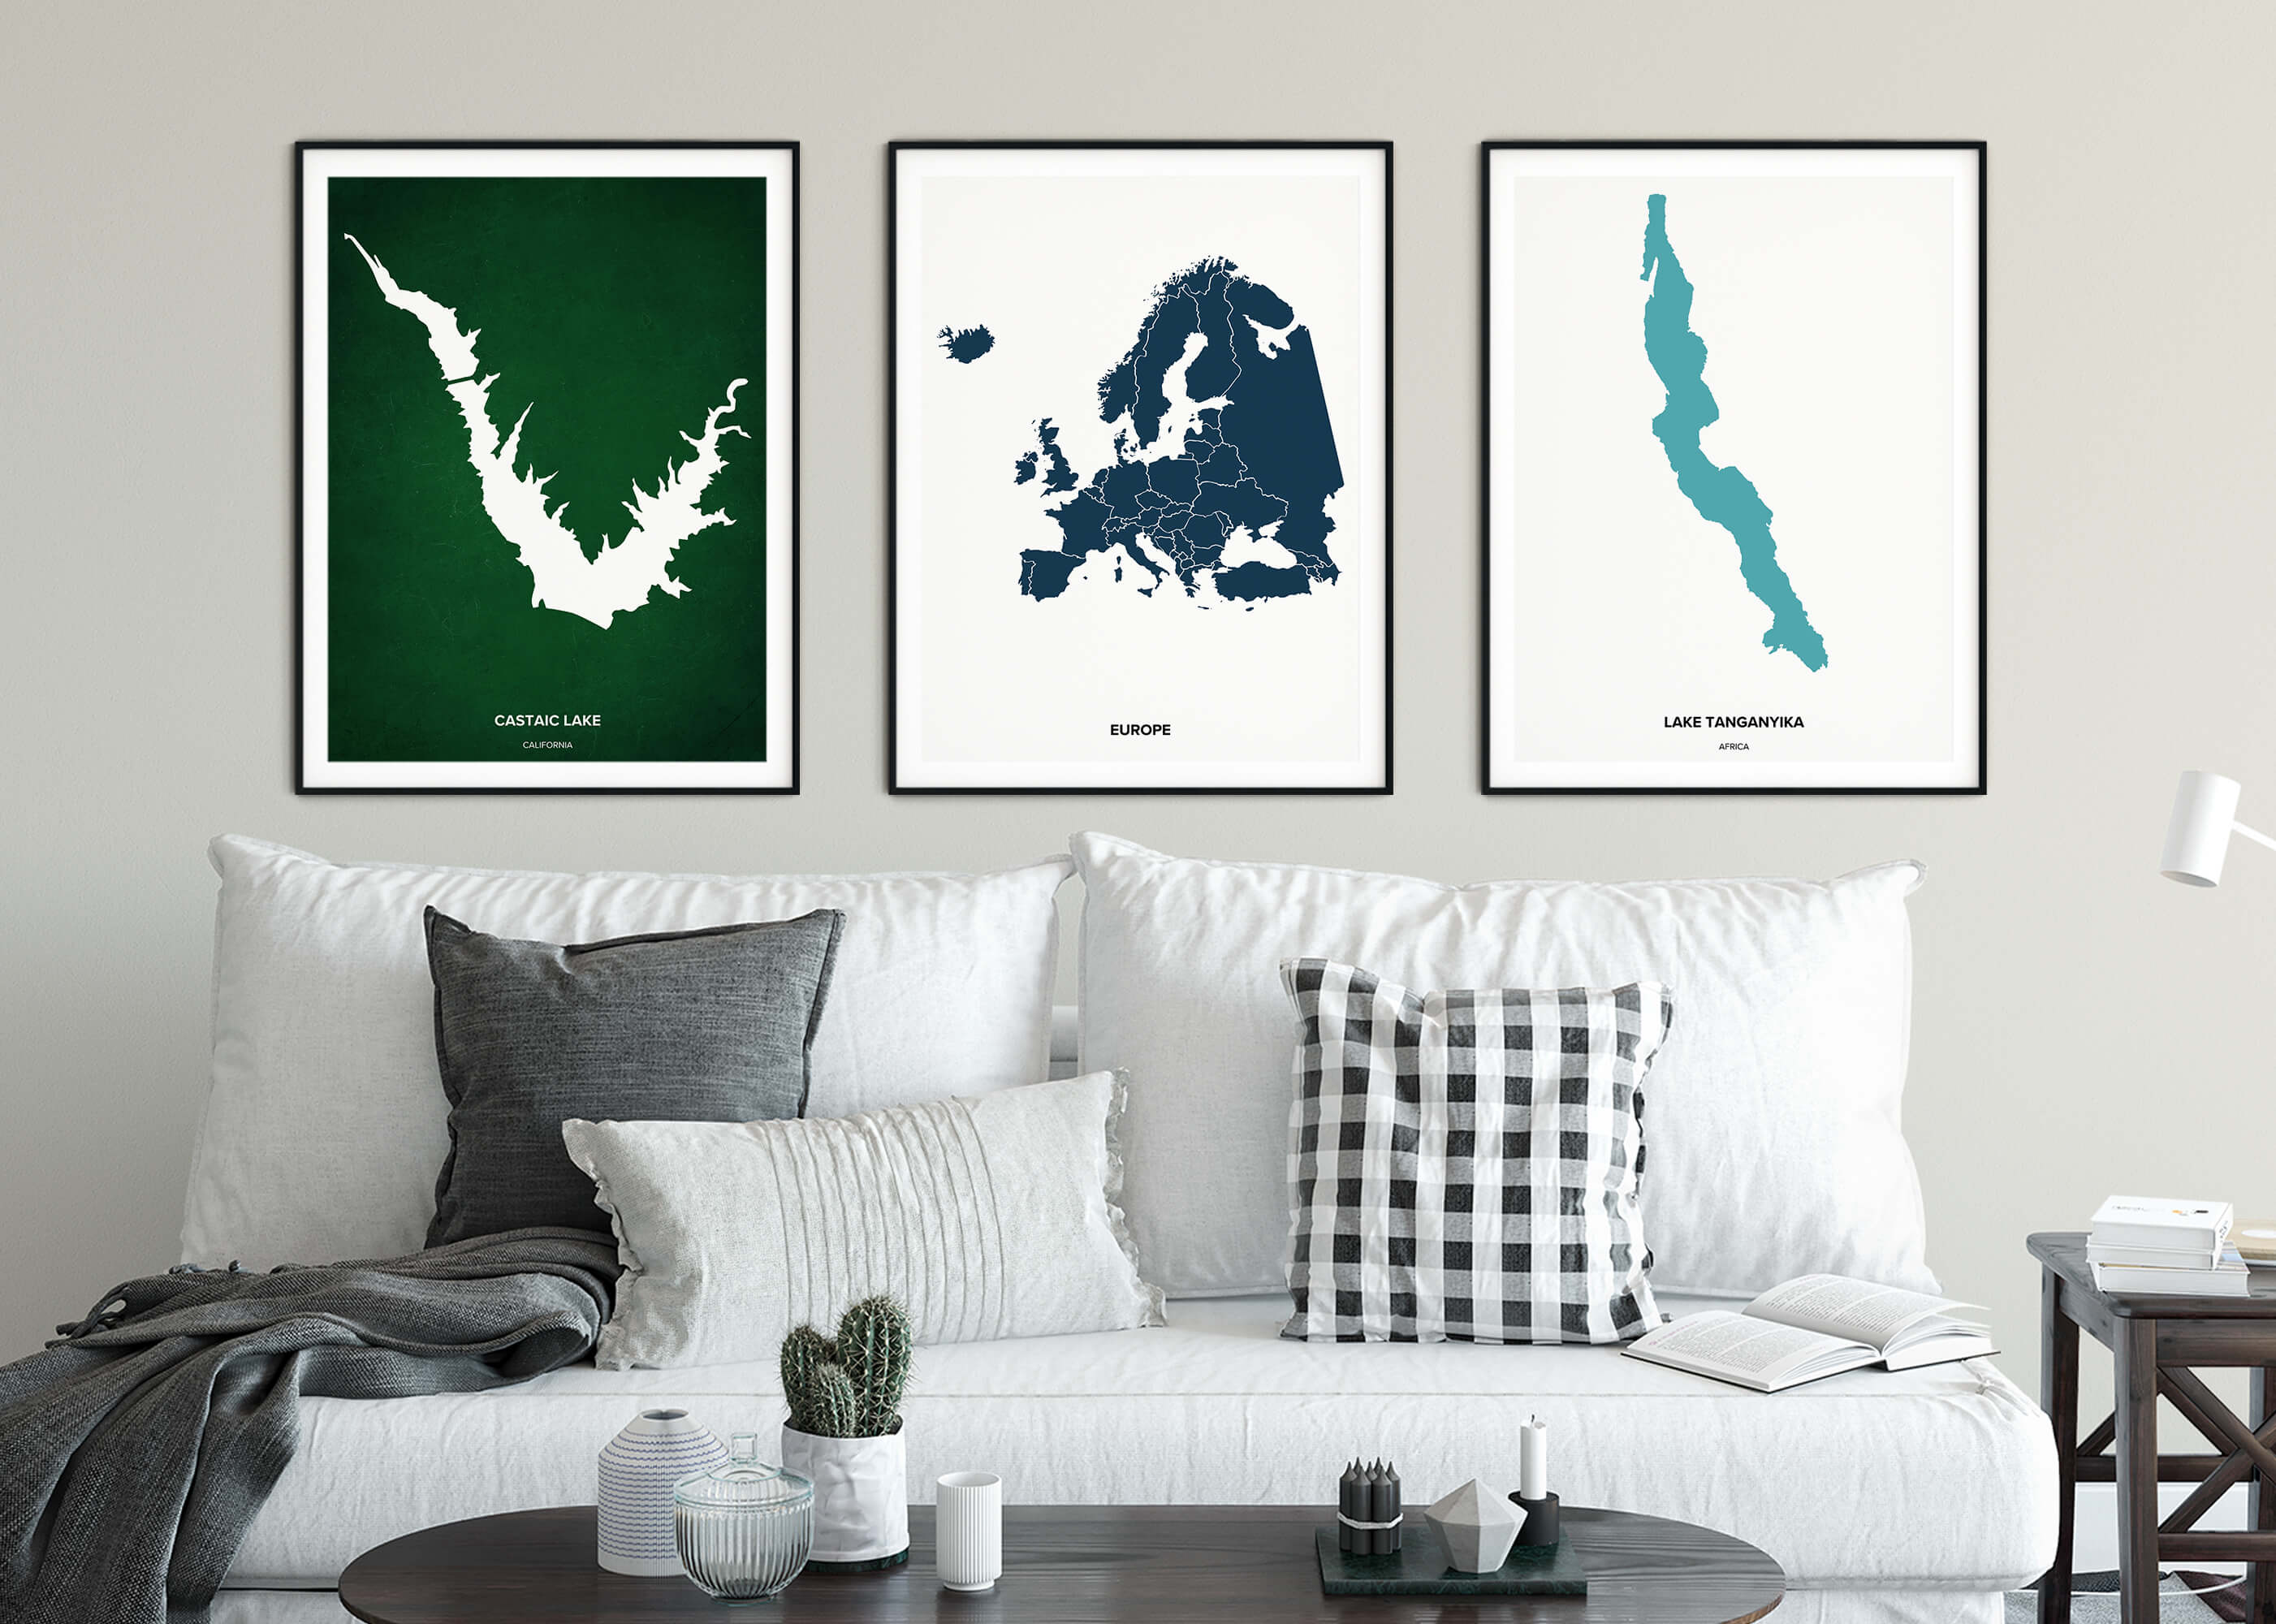 Positive Prints Custom Lakes Posters